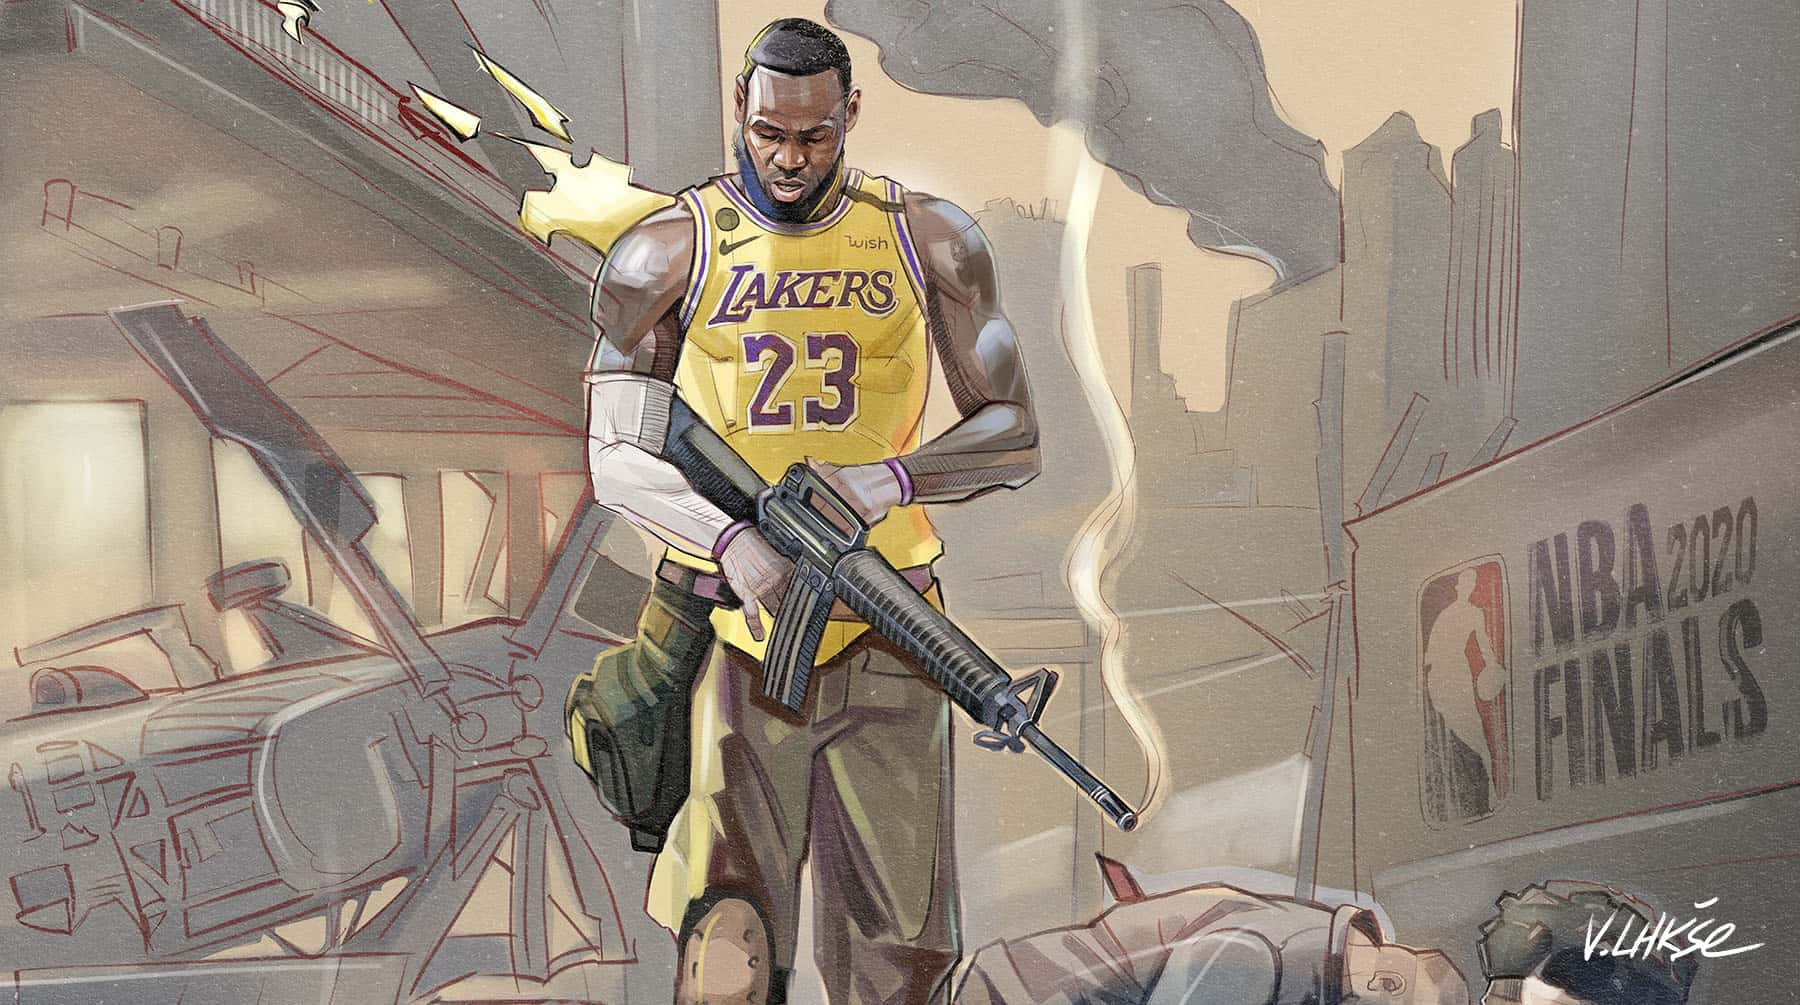 NBA APOCALYPSE LeBron James